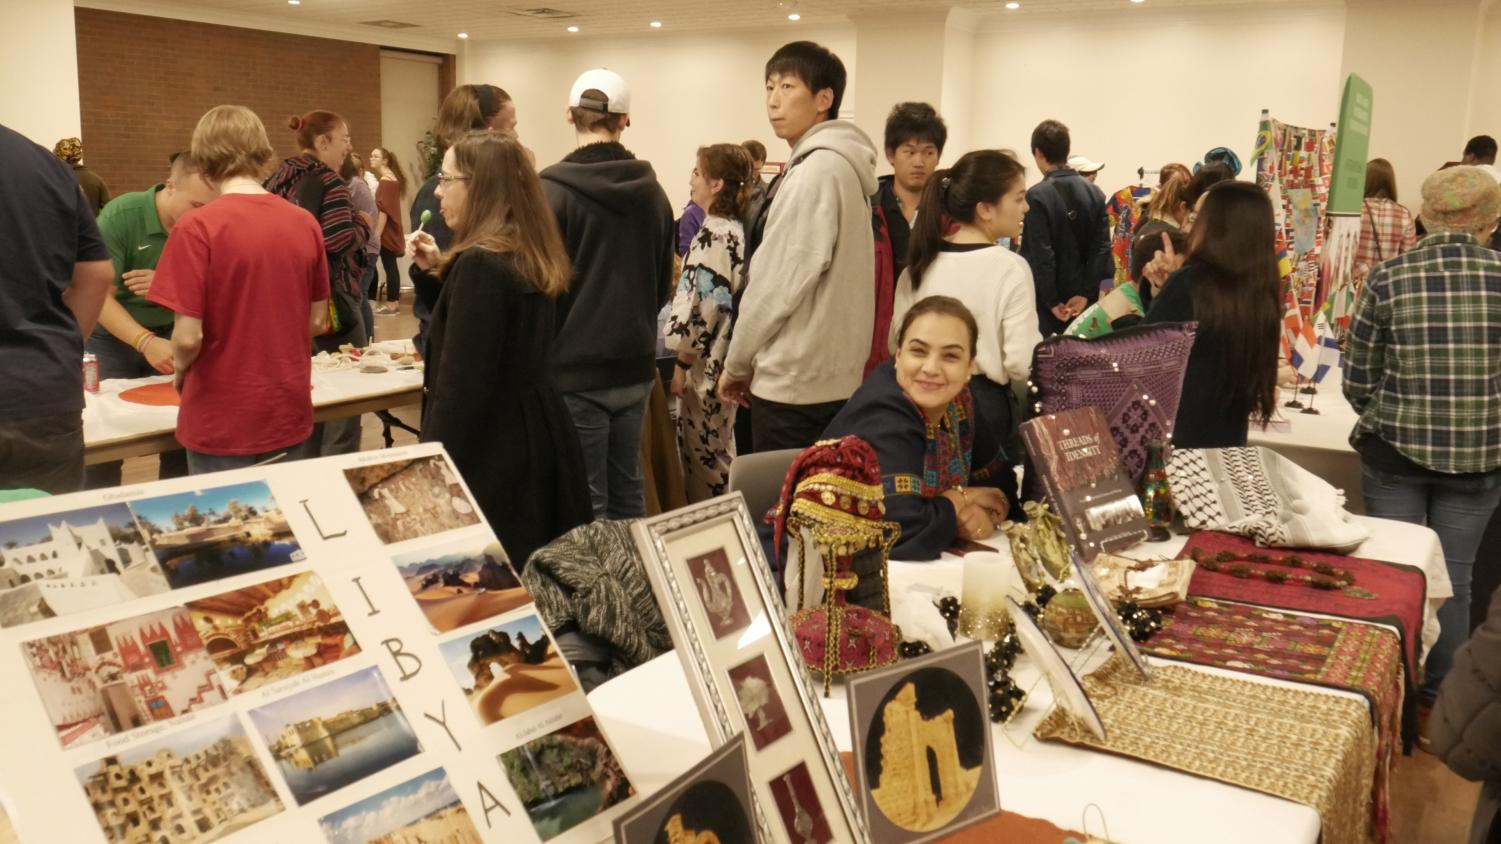 Marshall students and community members experienced a variety of cultures at the 56th annual International Festival Nov. 9 in the Memorial Student Center.